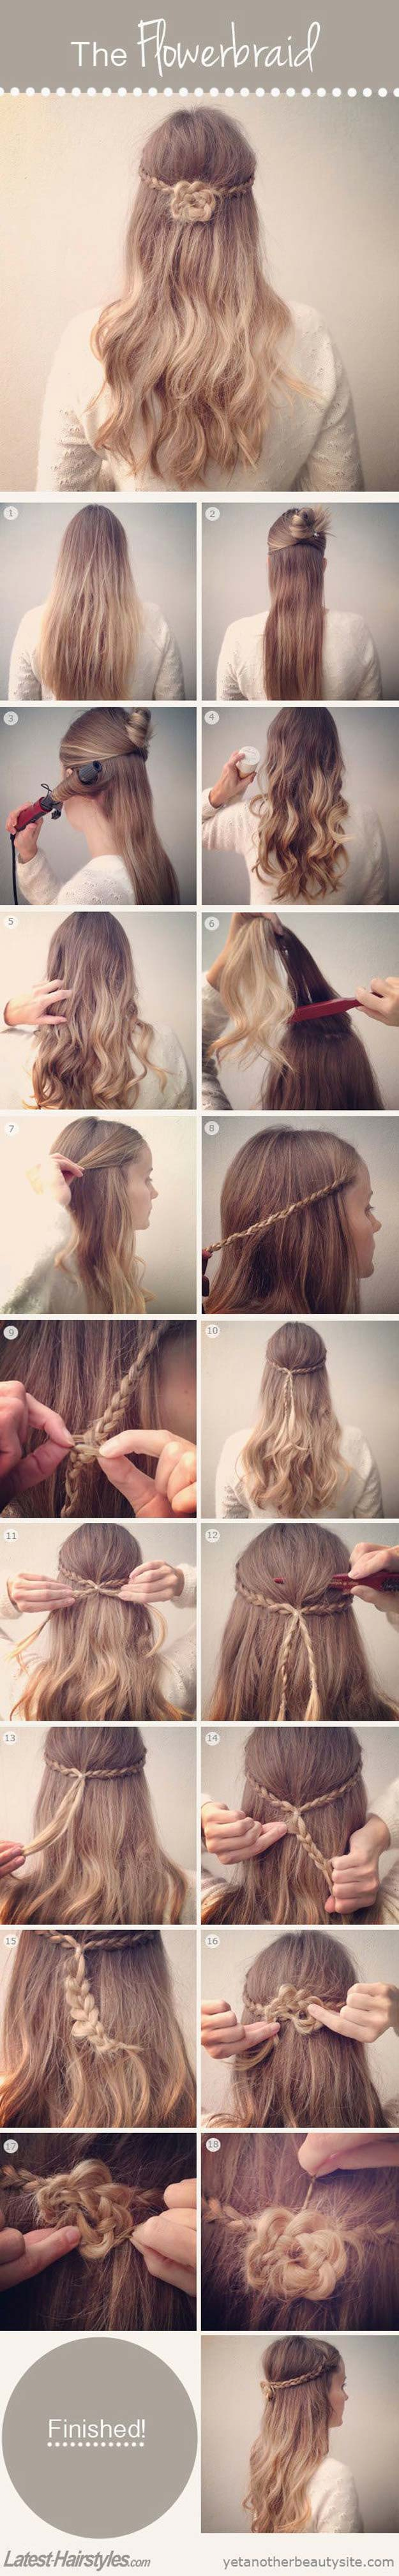 Best Hair Braiding Tutorials - How to Braid Your Hair Into a Pretty Flower - Easy Step by Step Tutorials for Braids - How To Braid Fishtail, French Braids, Flower Crown, Side Braids, Cornrows, Updos - Cool Braided Hairstyles for Girls, Teens and Women - School, Day and Evening, Boho, Casual and Formal Looks http://diyprojectsforteens.com/hair-braiding-tutorials